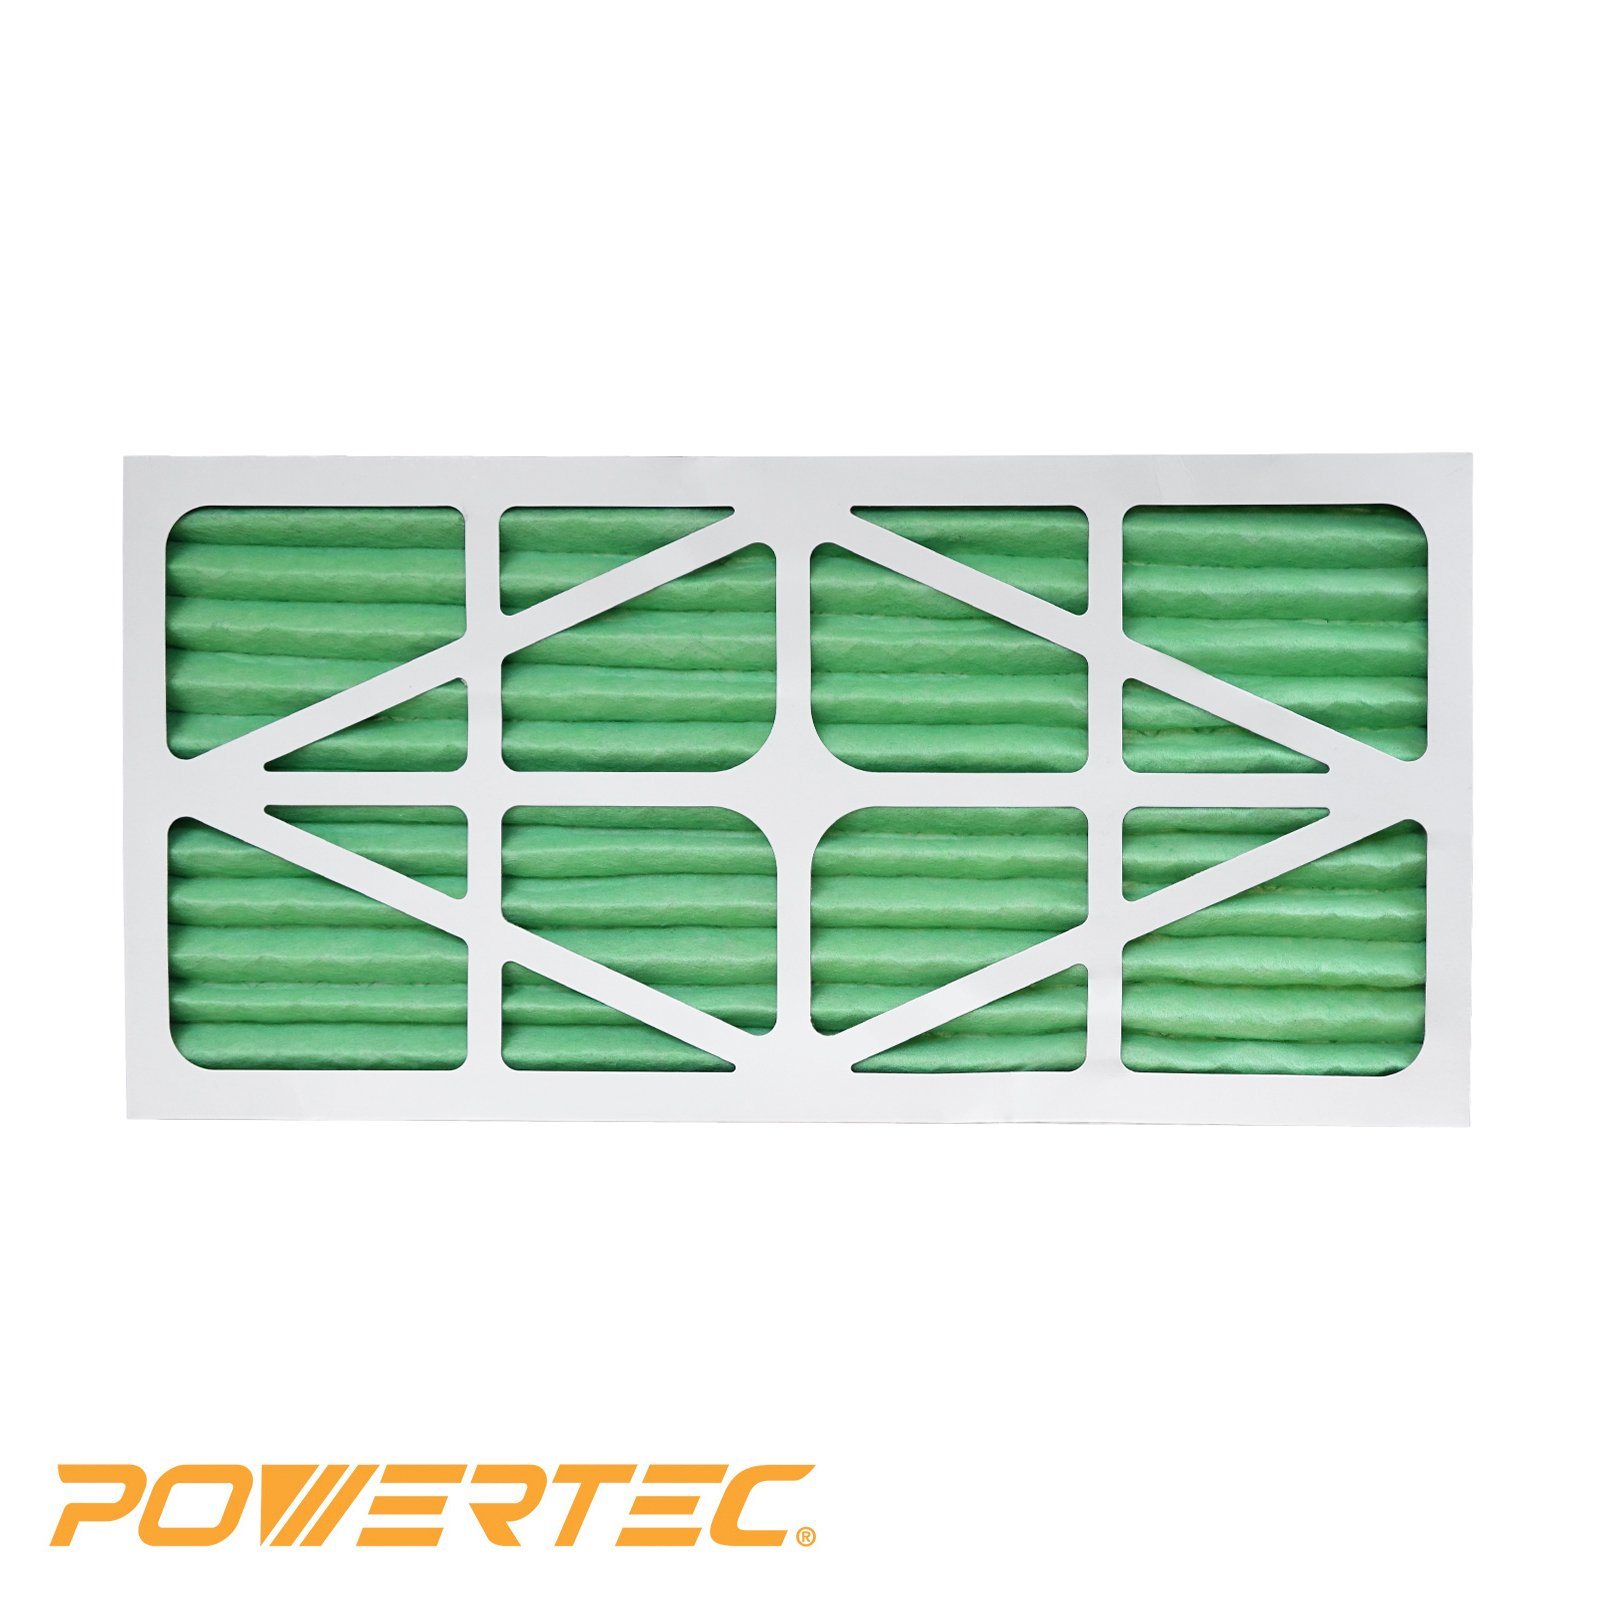 POWERTEC 75020 Outer Filter for POWERTEC AF1044 by POWERTEC